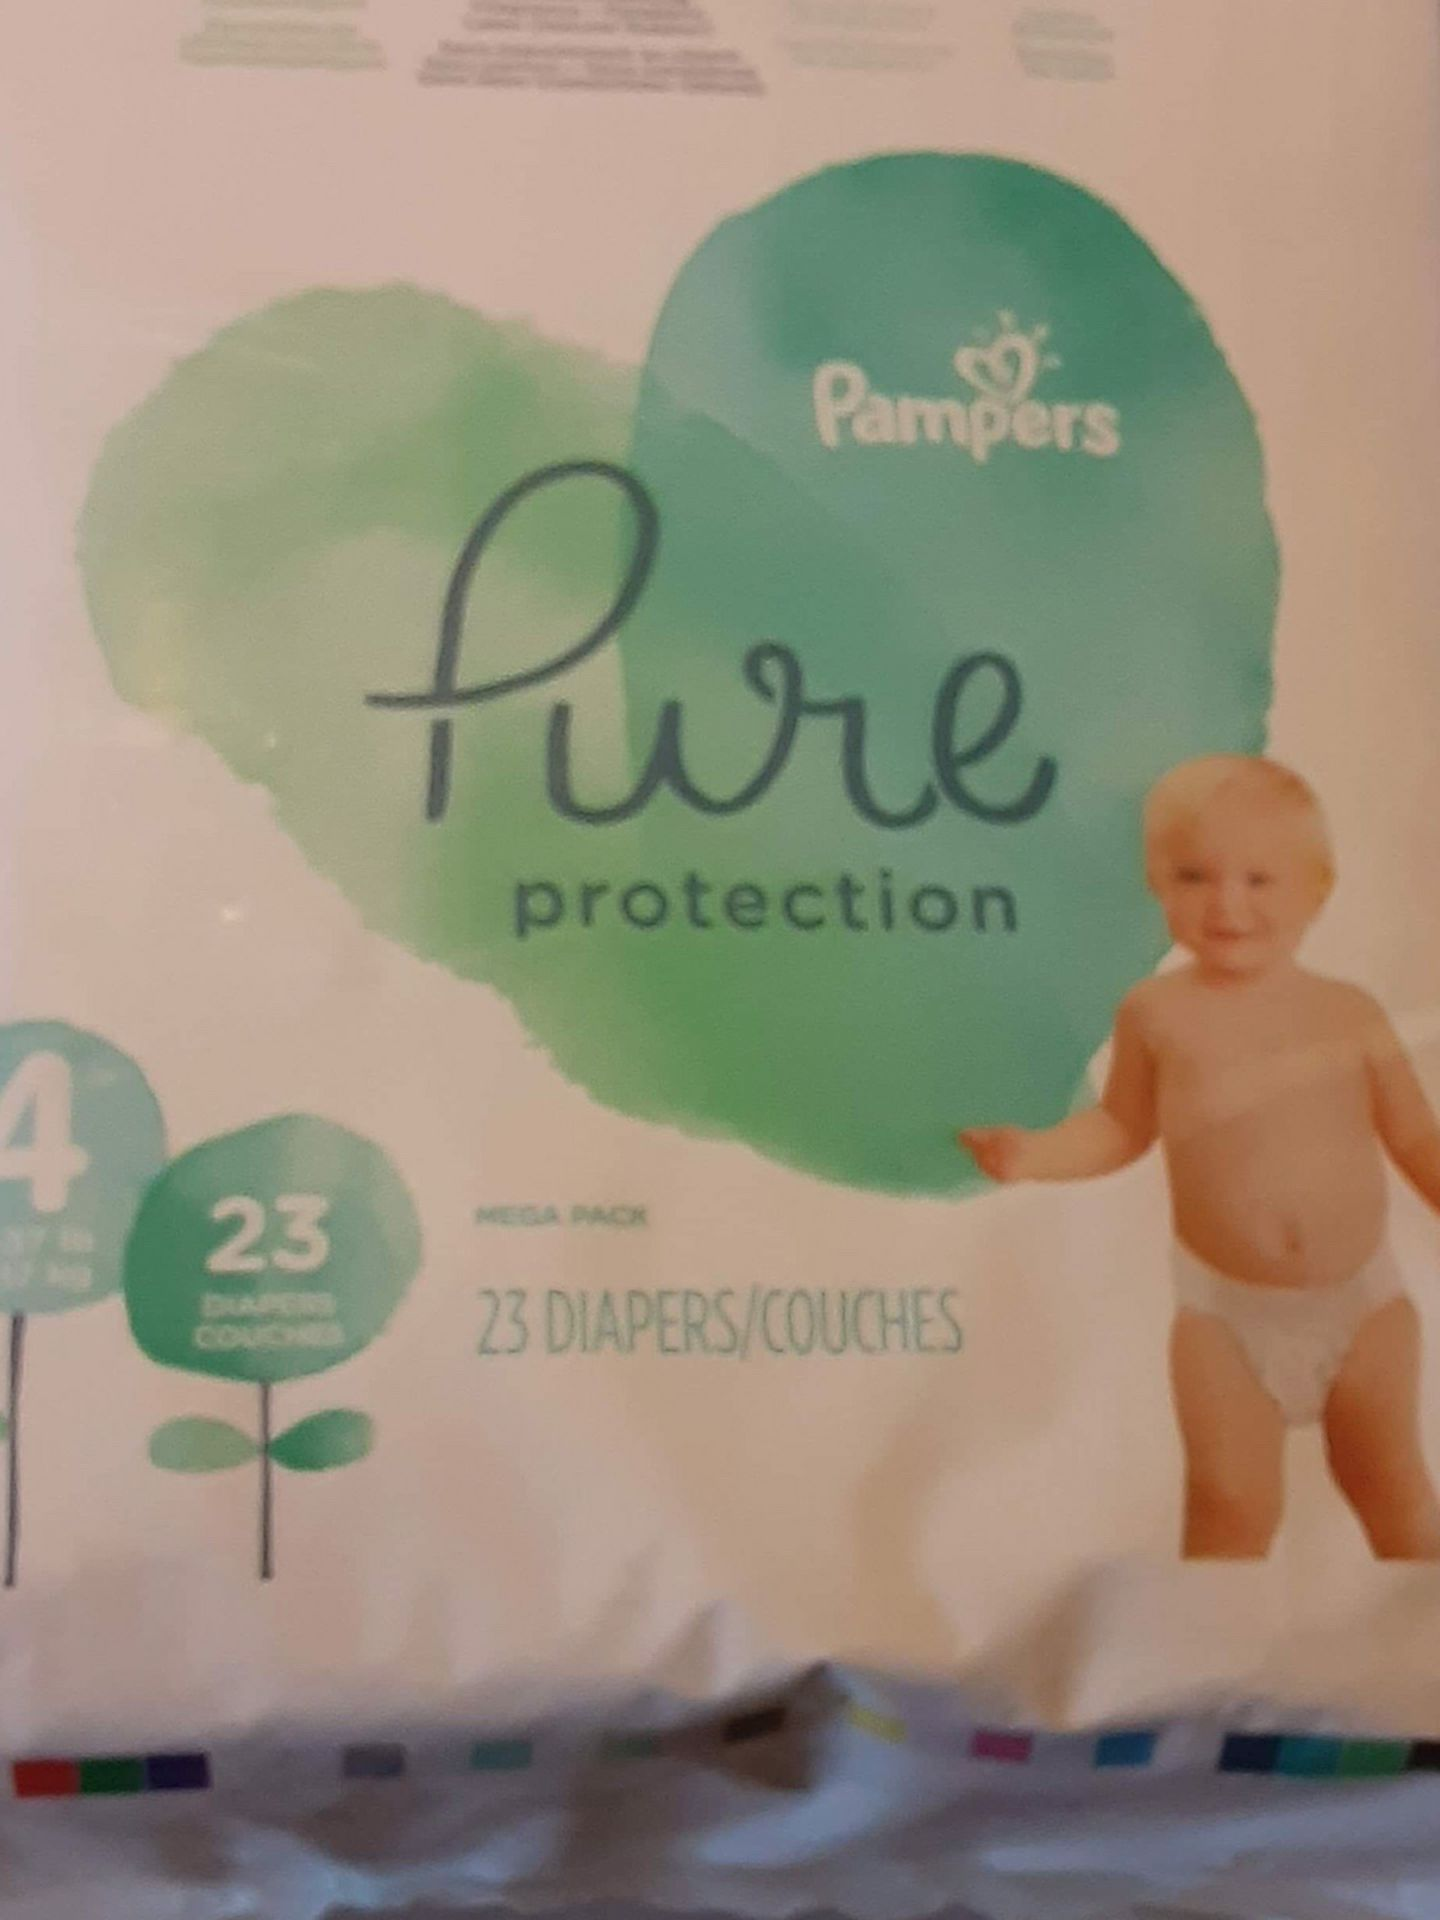 Pure Protection Pampers